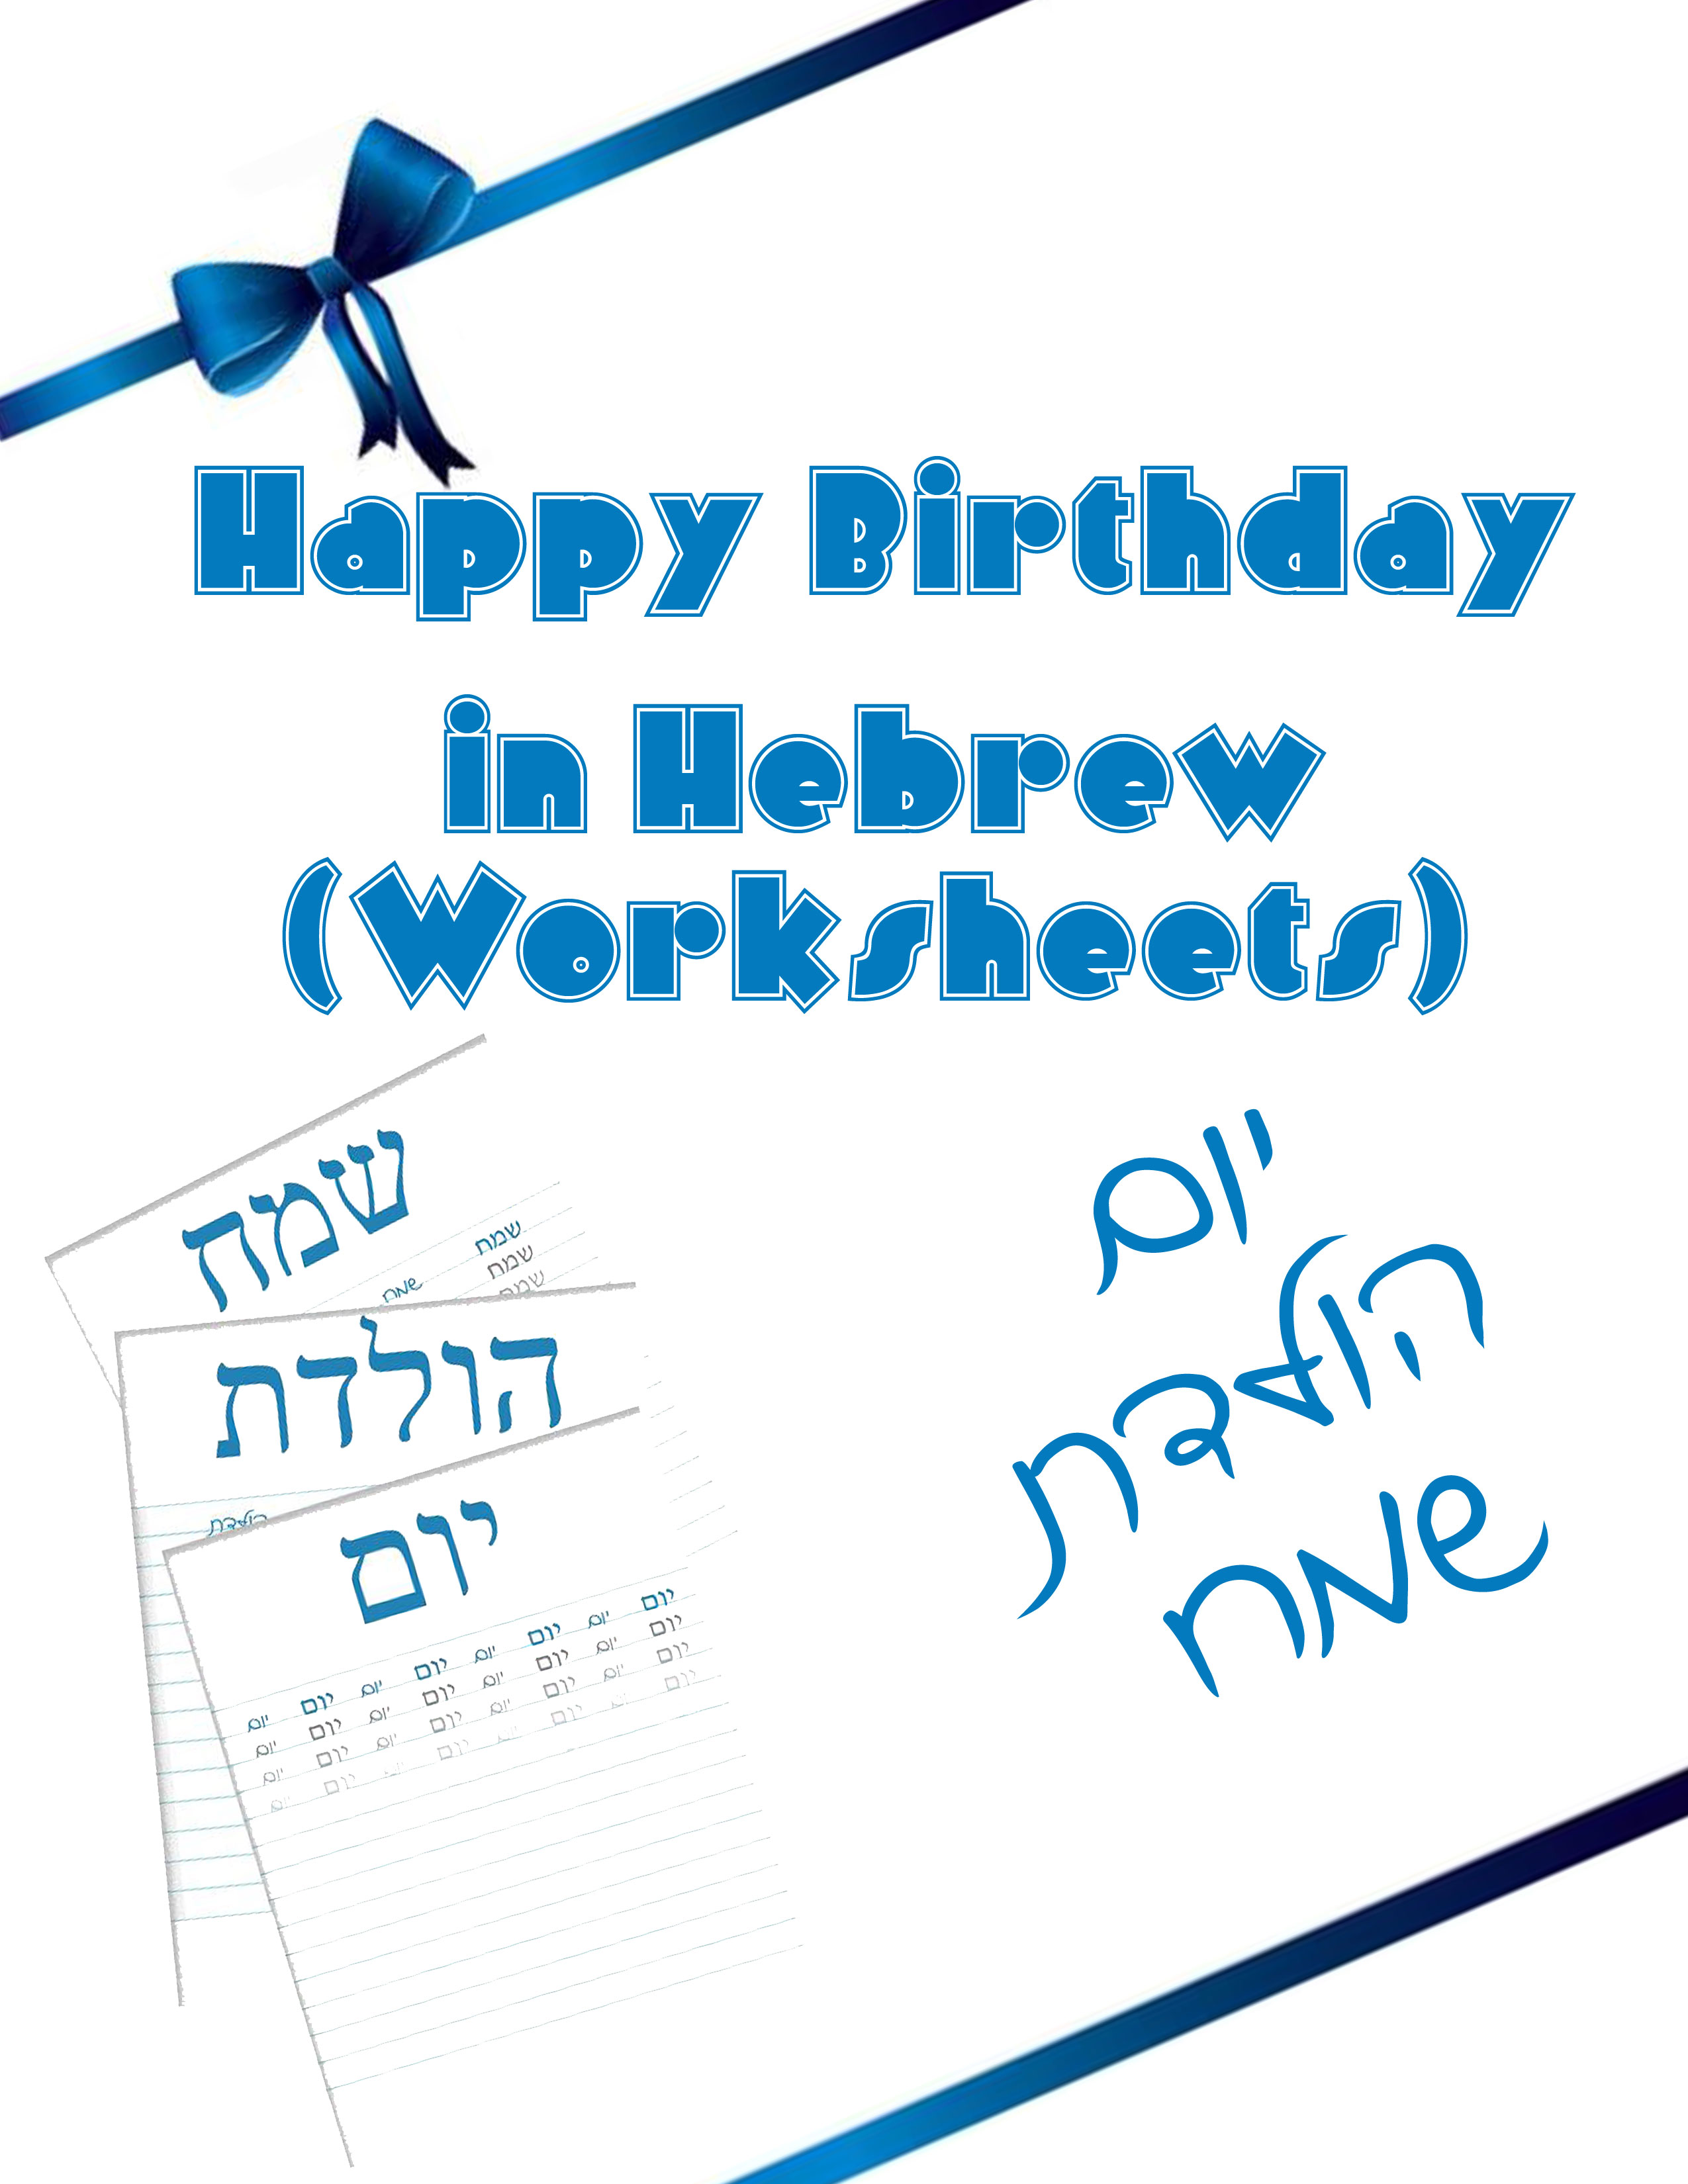 Happy Birthday in Hebrew | Yom Huledet Sameach (With Audio